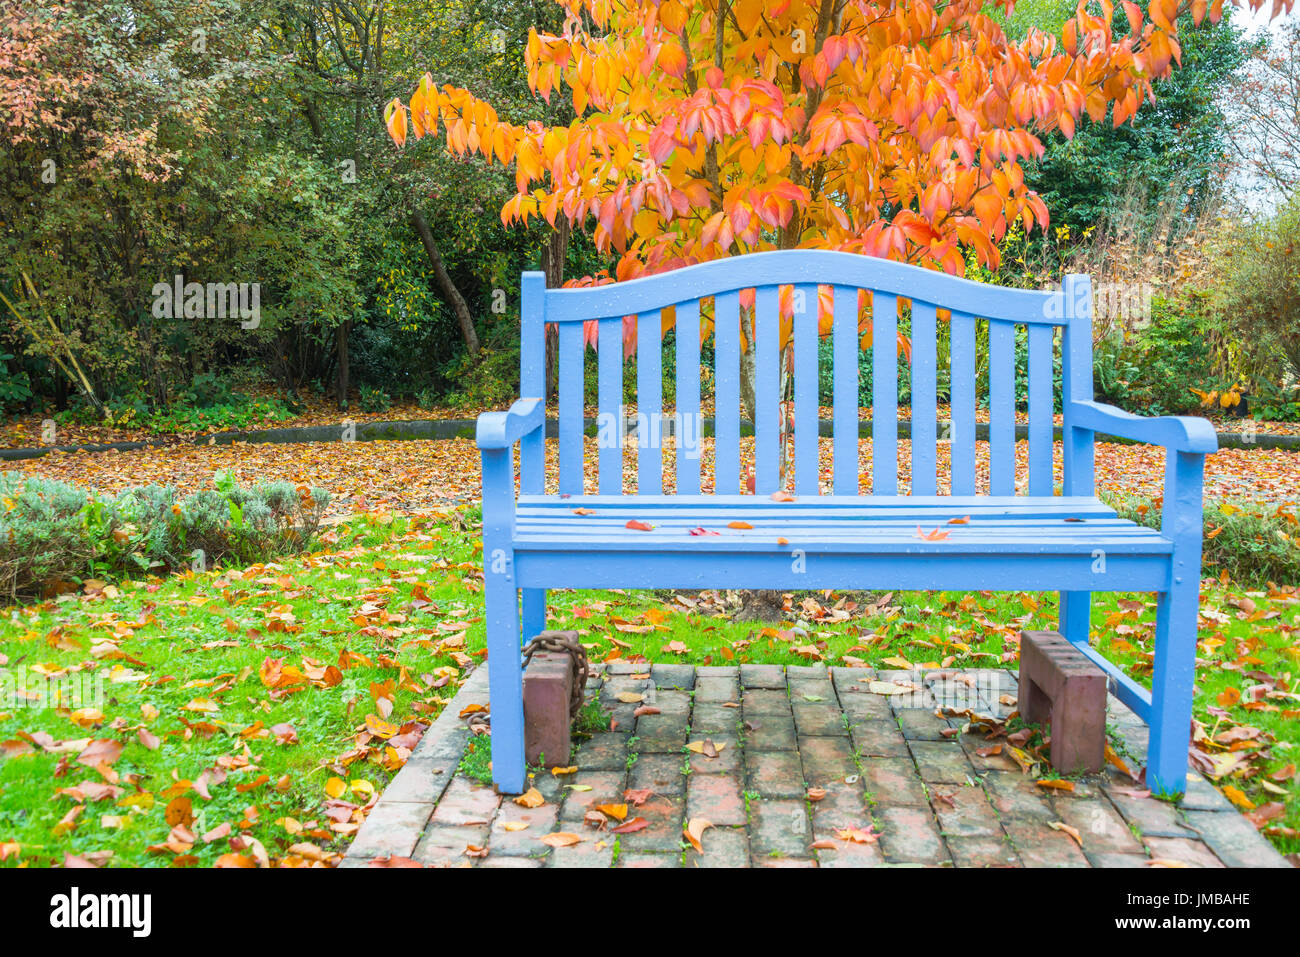 Sky Blue Bench in Park with Orange Autumn Color Tree - Stock Image